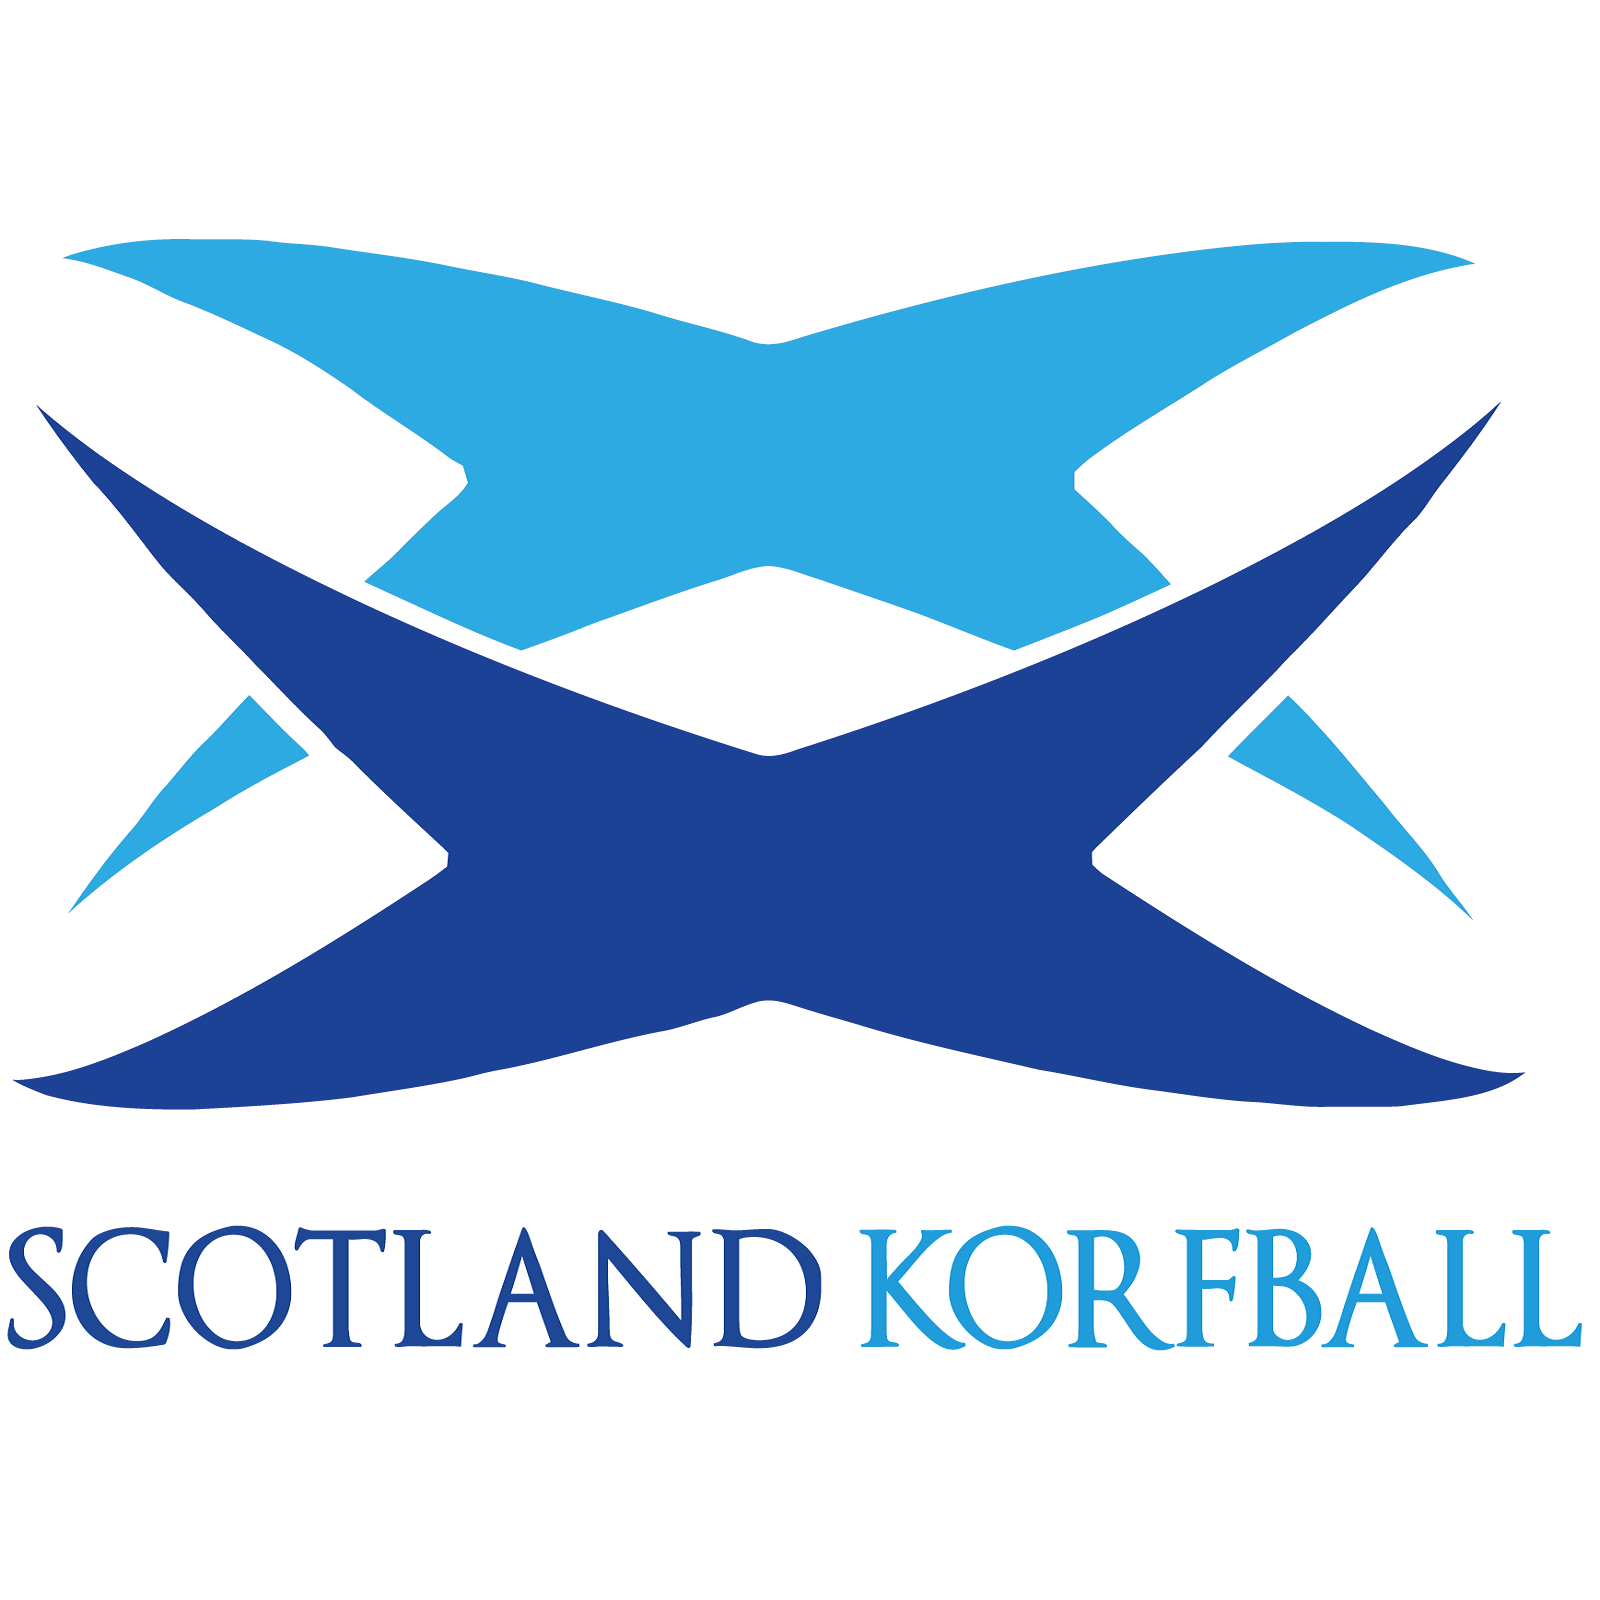 Scottish Korfball Association